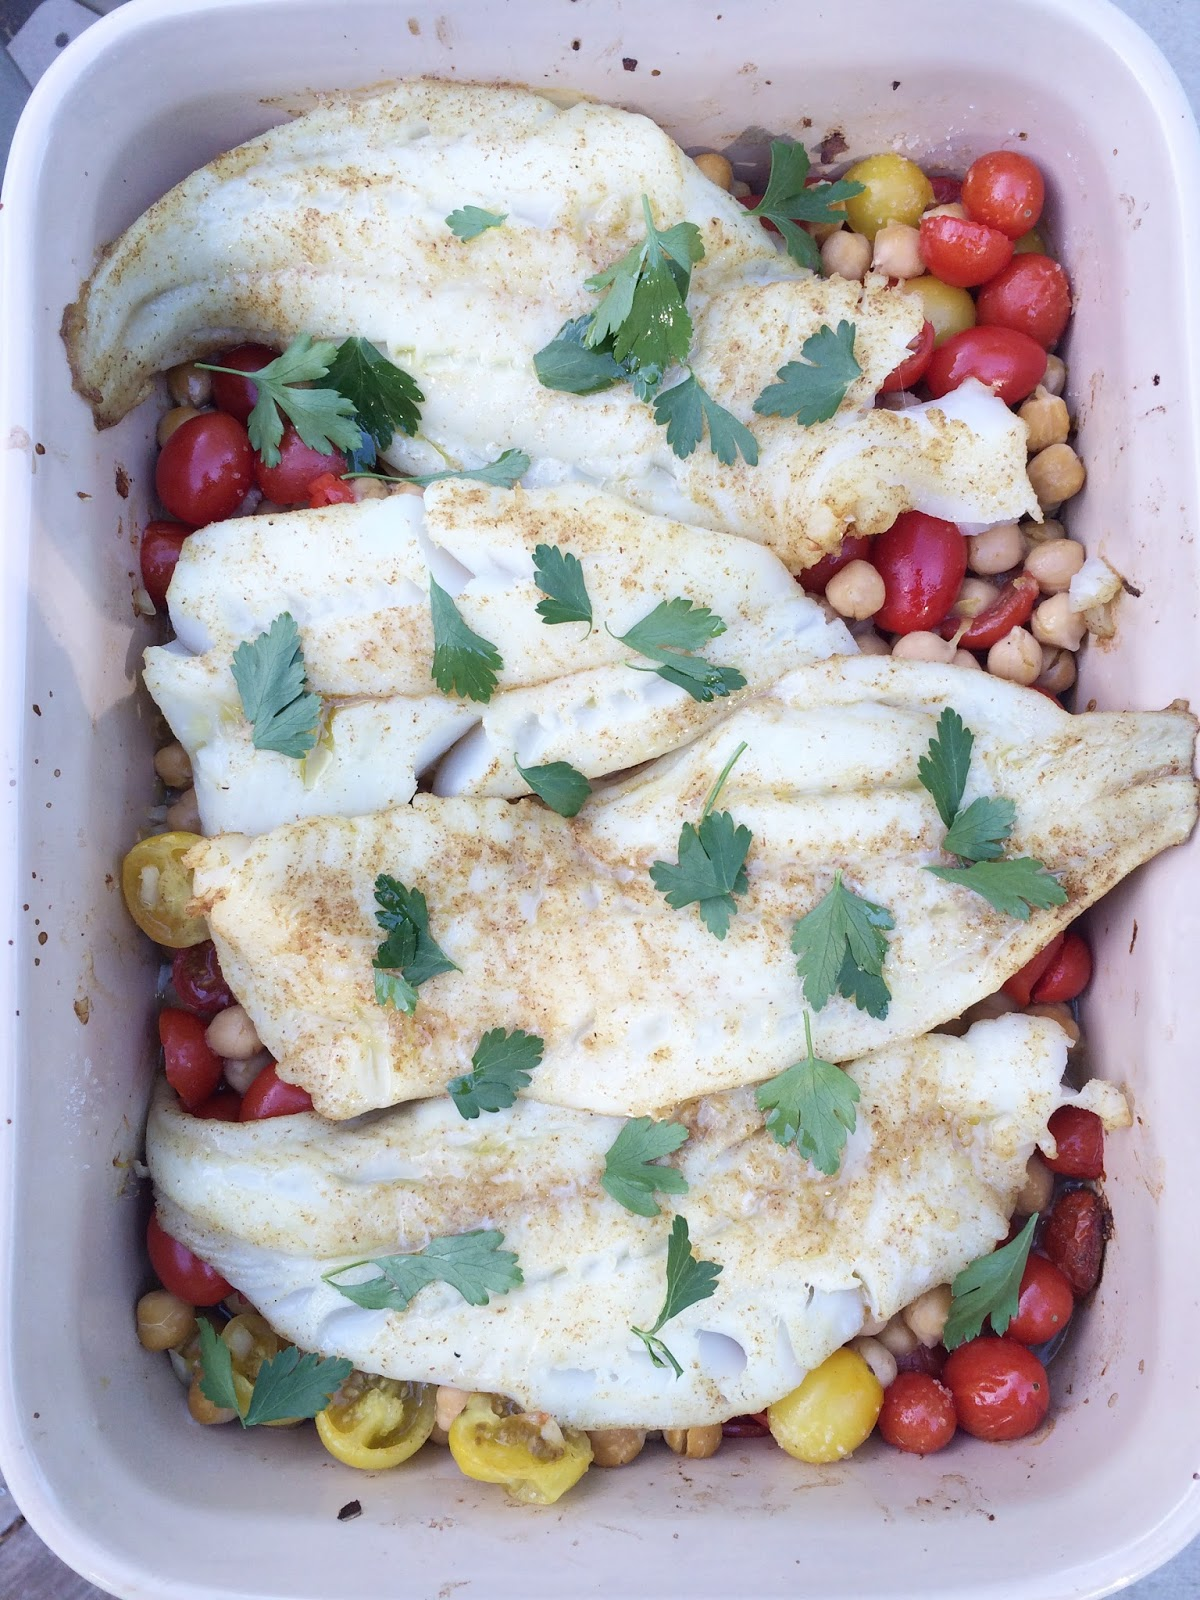 Spice and Sass: Baked Fish With Chickpeas and Cherry Tomatoes